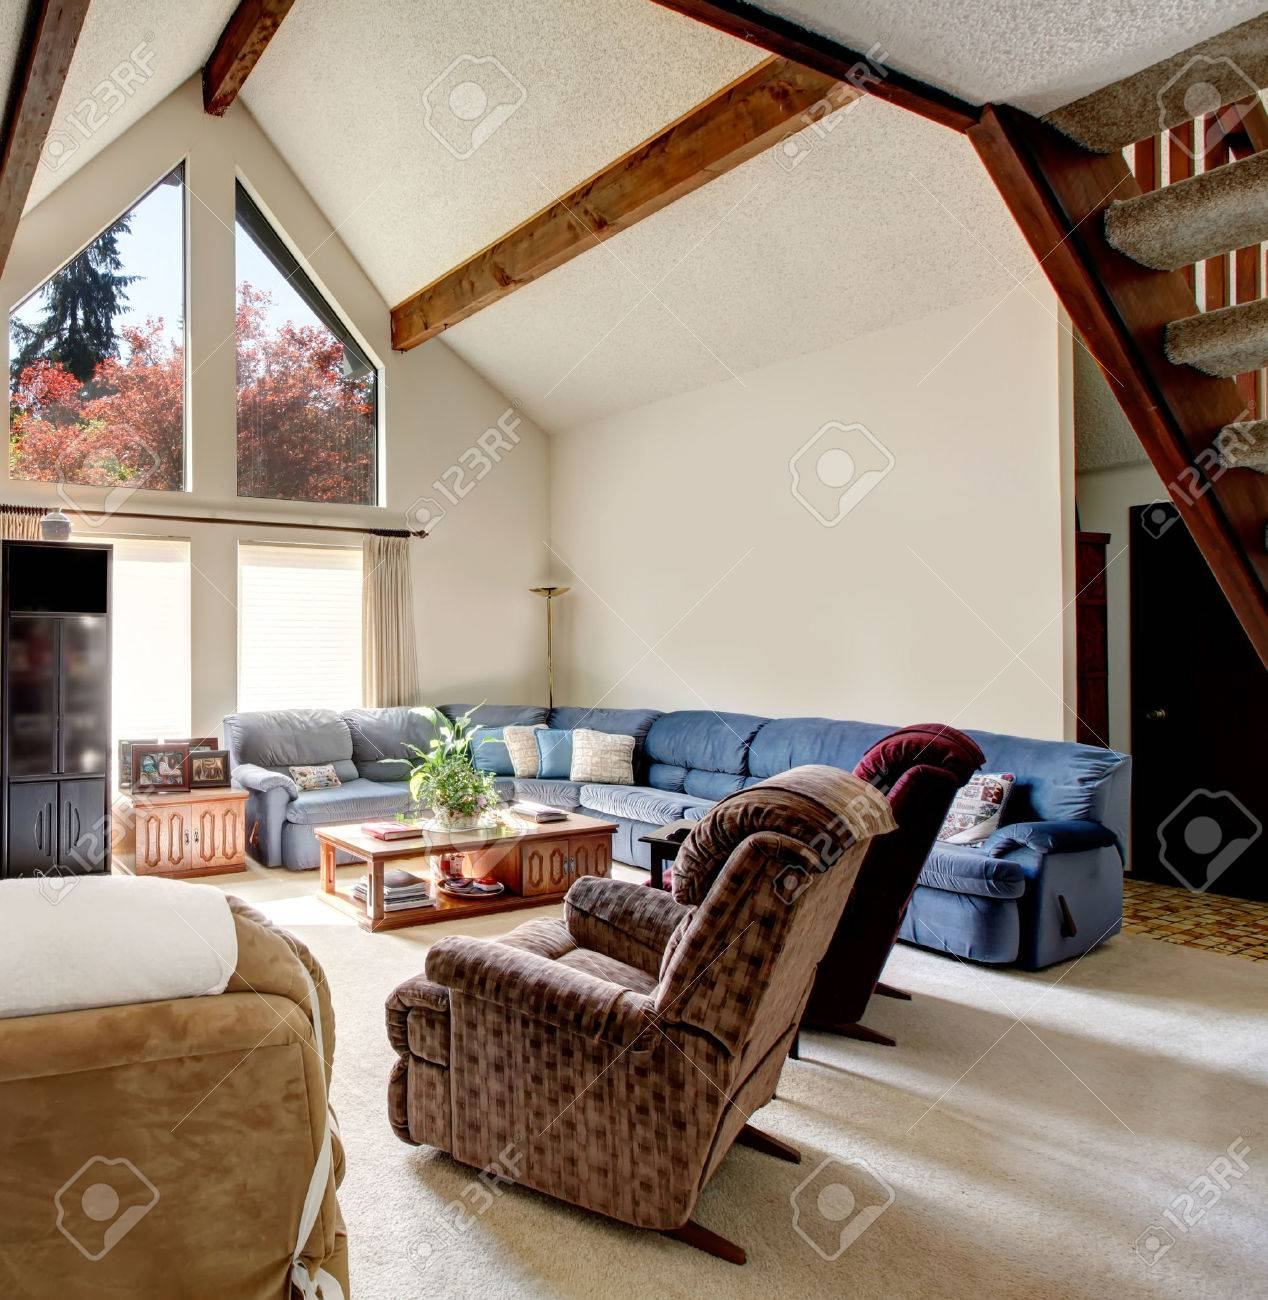 Vaulted Ceiling Living Room Bright Big Living Room With Vaulted Ceiling And Beams Carpet